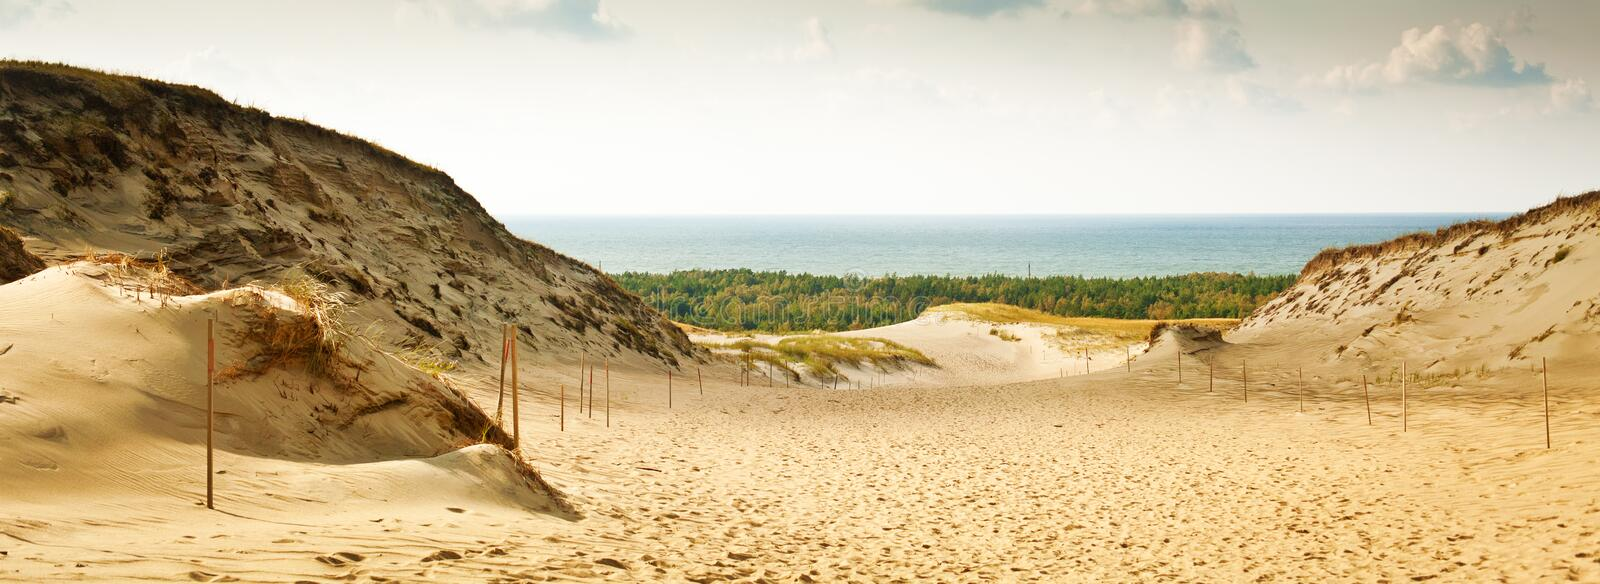 Panoramic View of the Grey Dunes at the Curonian Spit. In Nida, Neringa, Lithuania royalty free stock photography